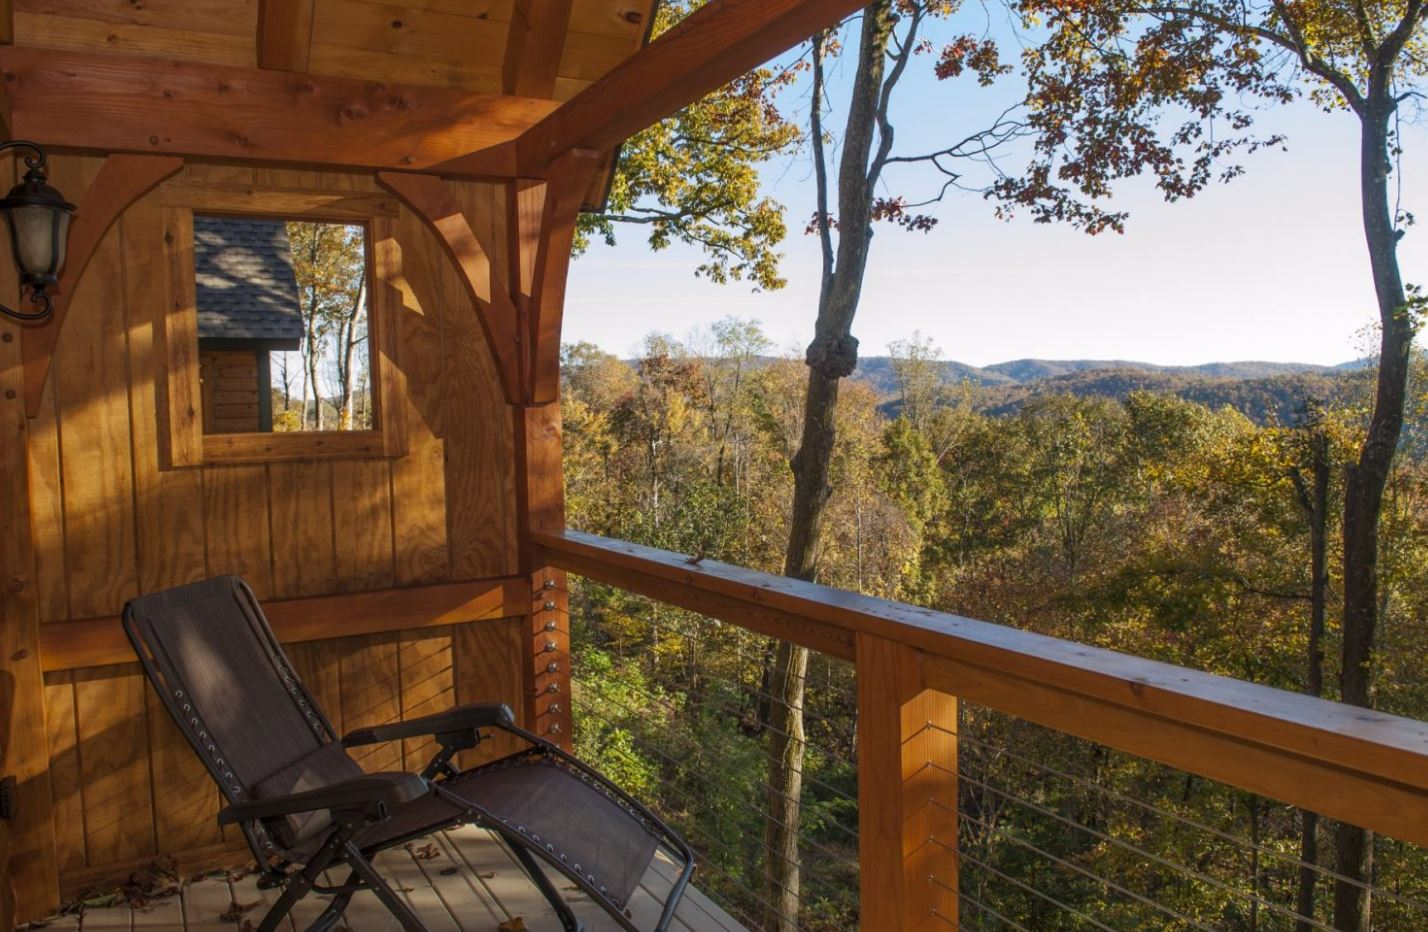 The Inn offers gorgeous views from private balconies.